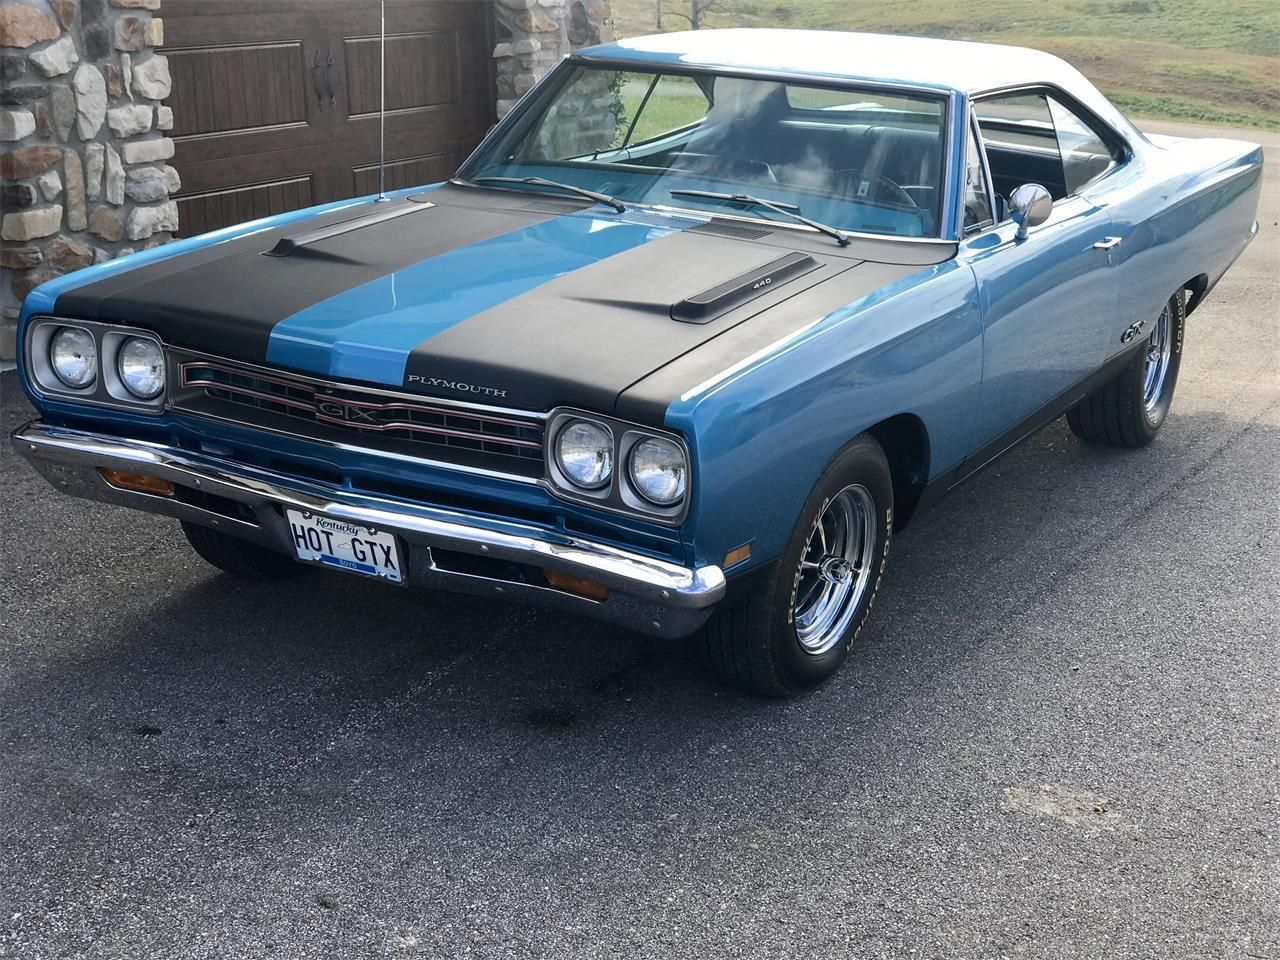 For Sale 1969 Plymouth Gtx In Catlettsburg Kentucky Mopar Muscle Cars Classic Cars Plymouth Gtx